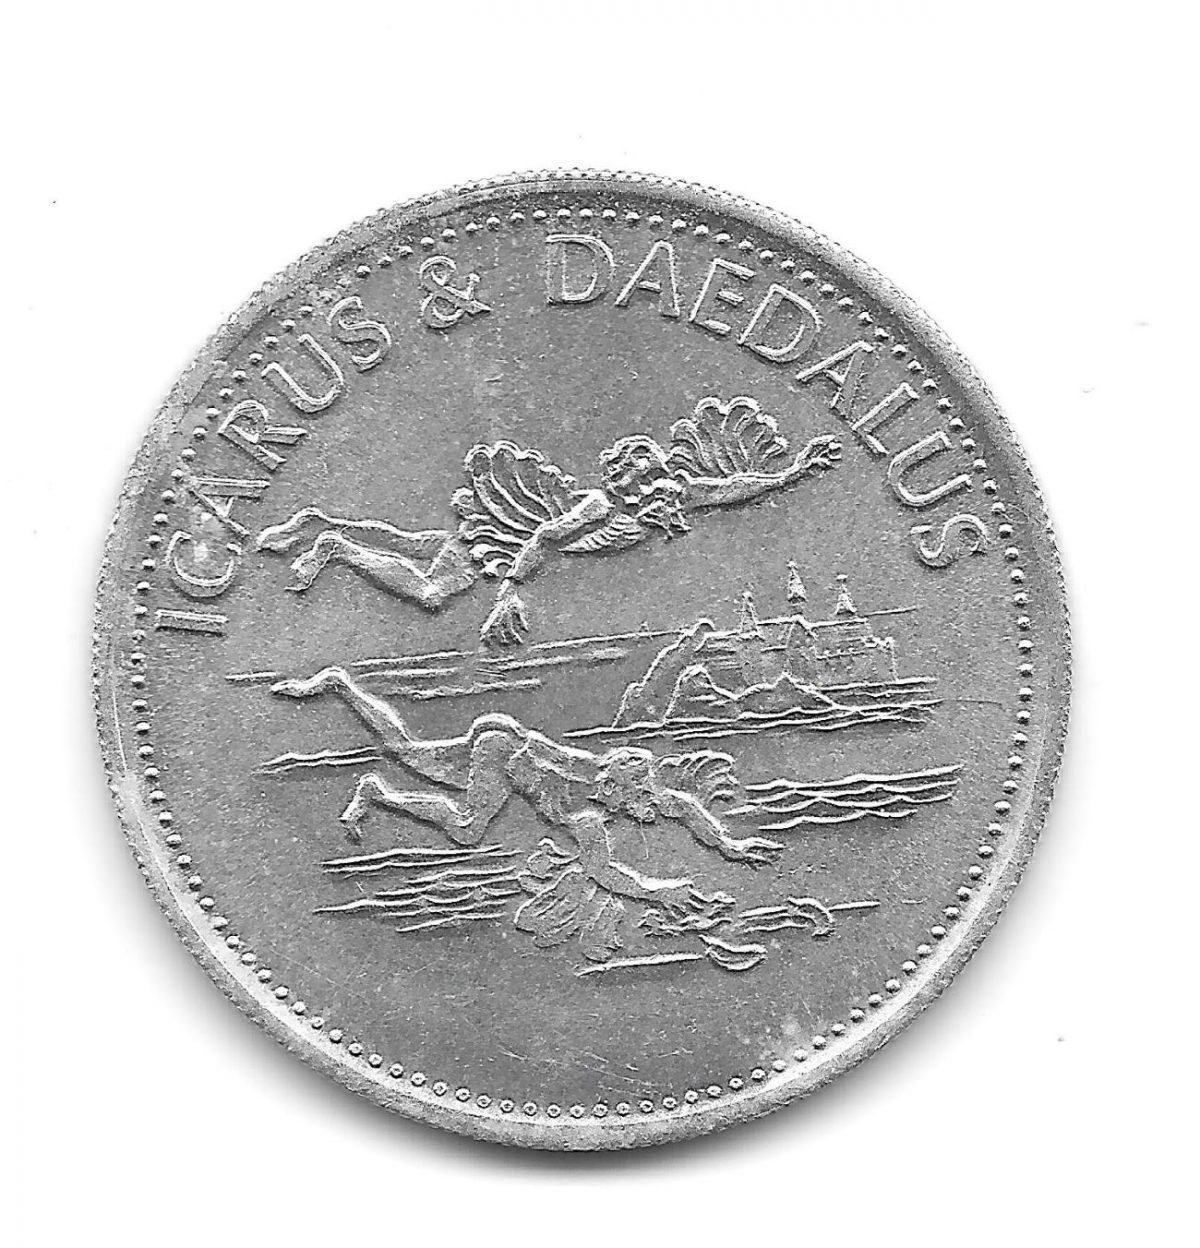 Shell, coins, Man in Flight, 1970s, Icarus and Daedalus